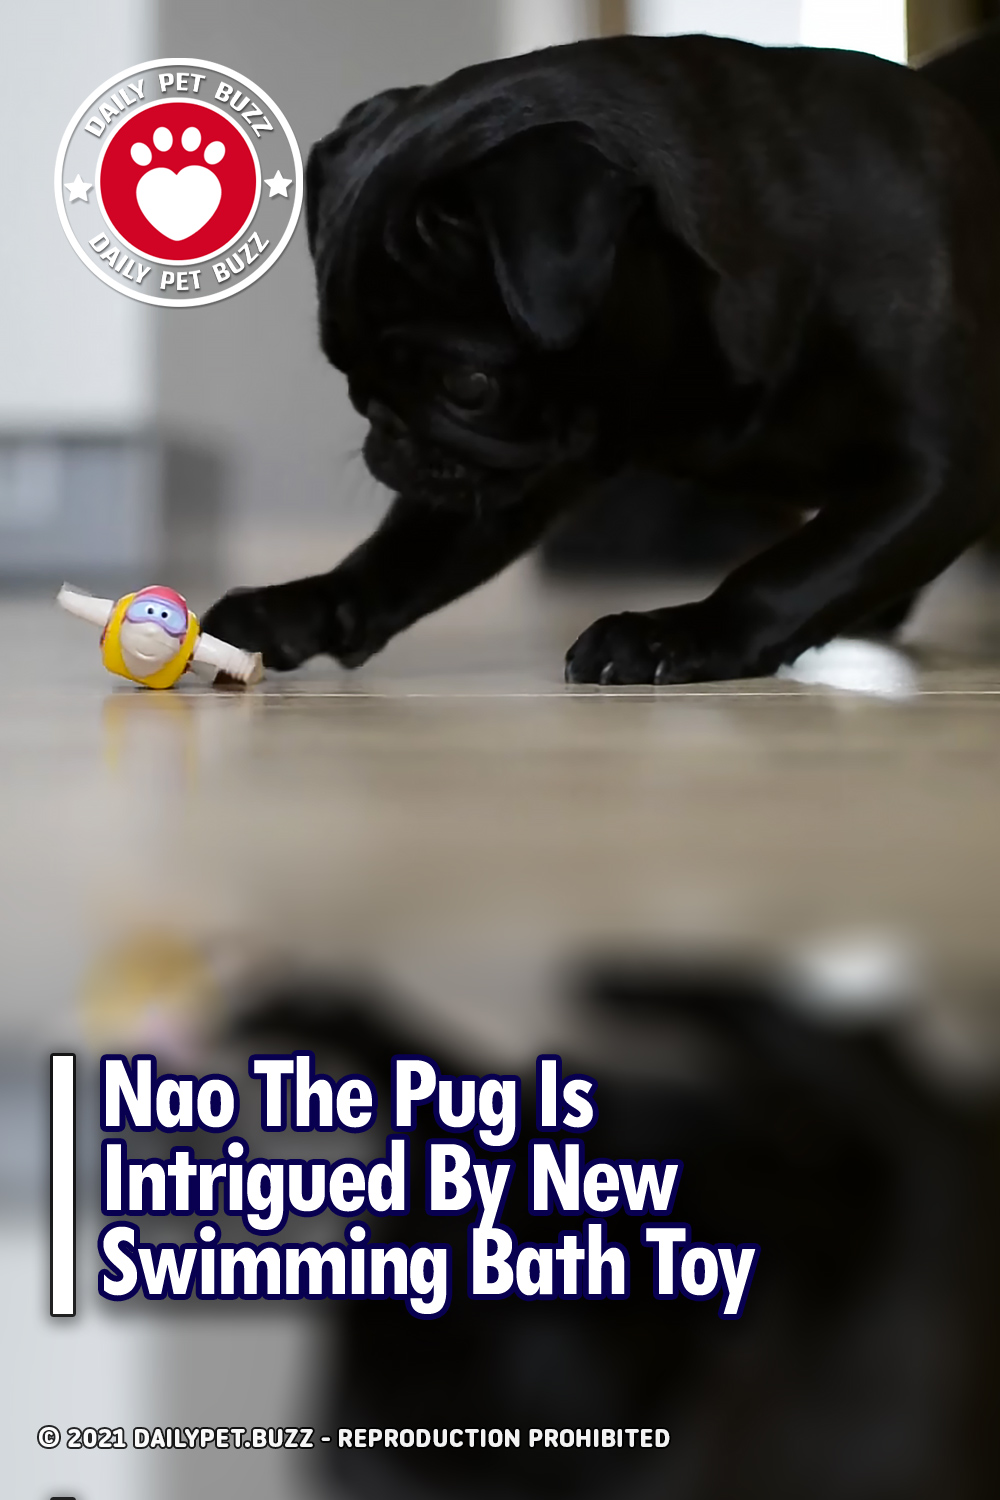 Nao The Pug Is Intrigued By New Swimming Bath Toy